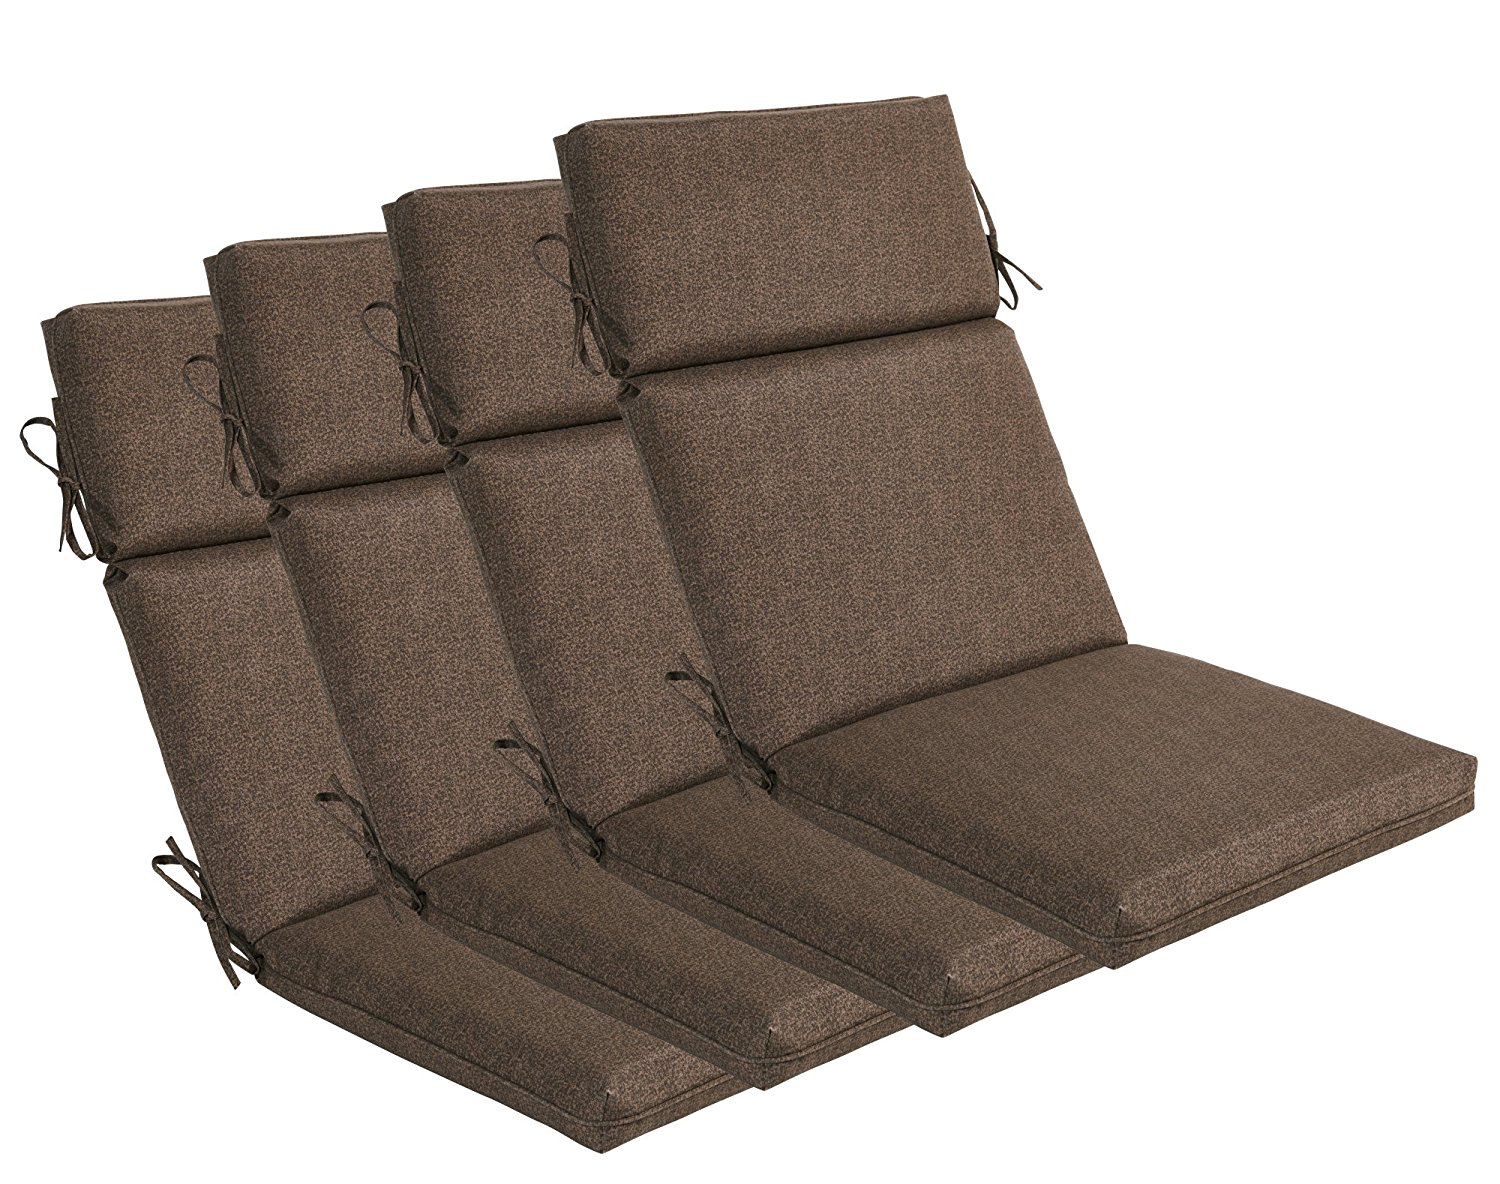 Lovely Bossima Indoor/Outdoor Coffee High Back Chair Cushion, Set Of  4.Spring/Summer Seasonal Replacement Cushions.   Walmart.com